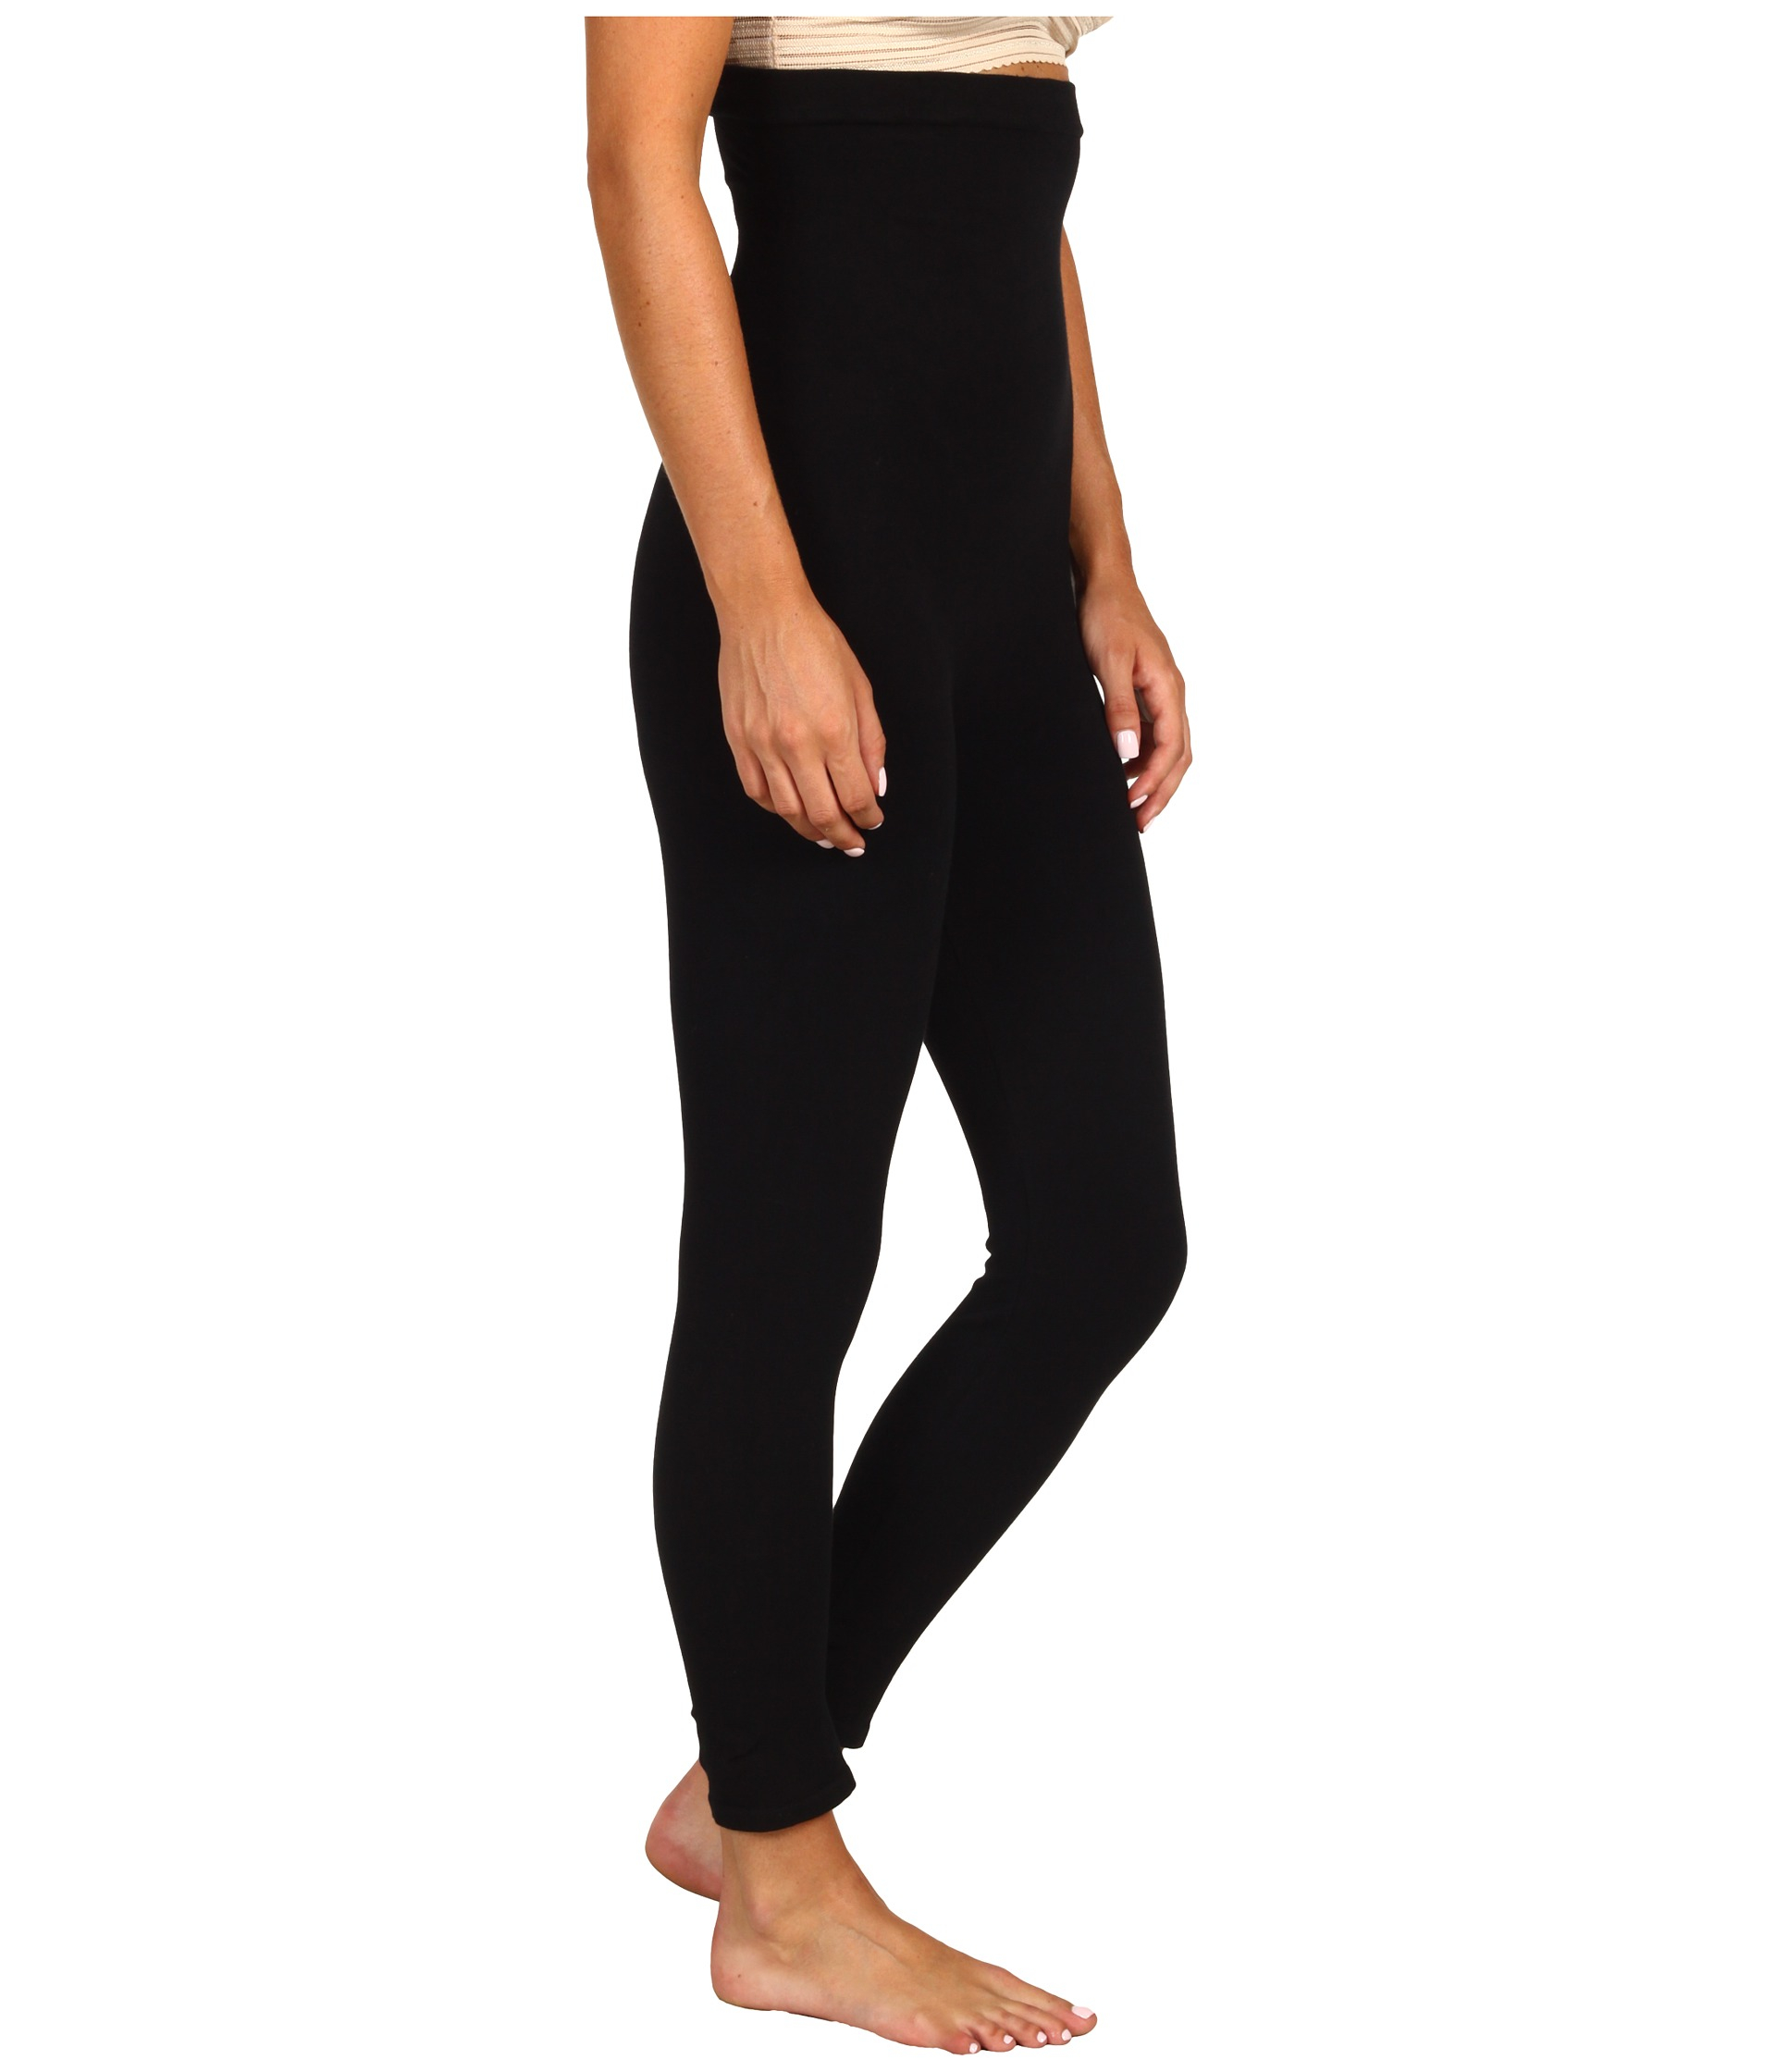 Spanx High Waisted Leggings